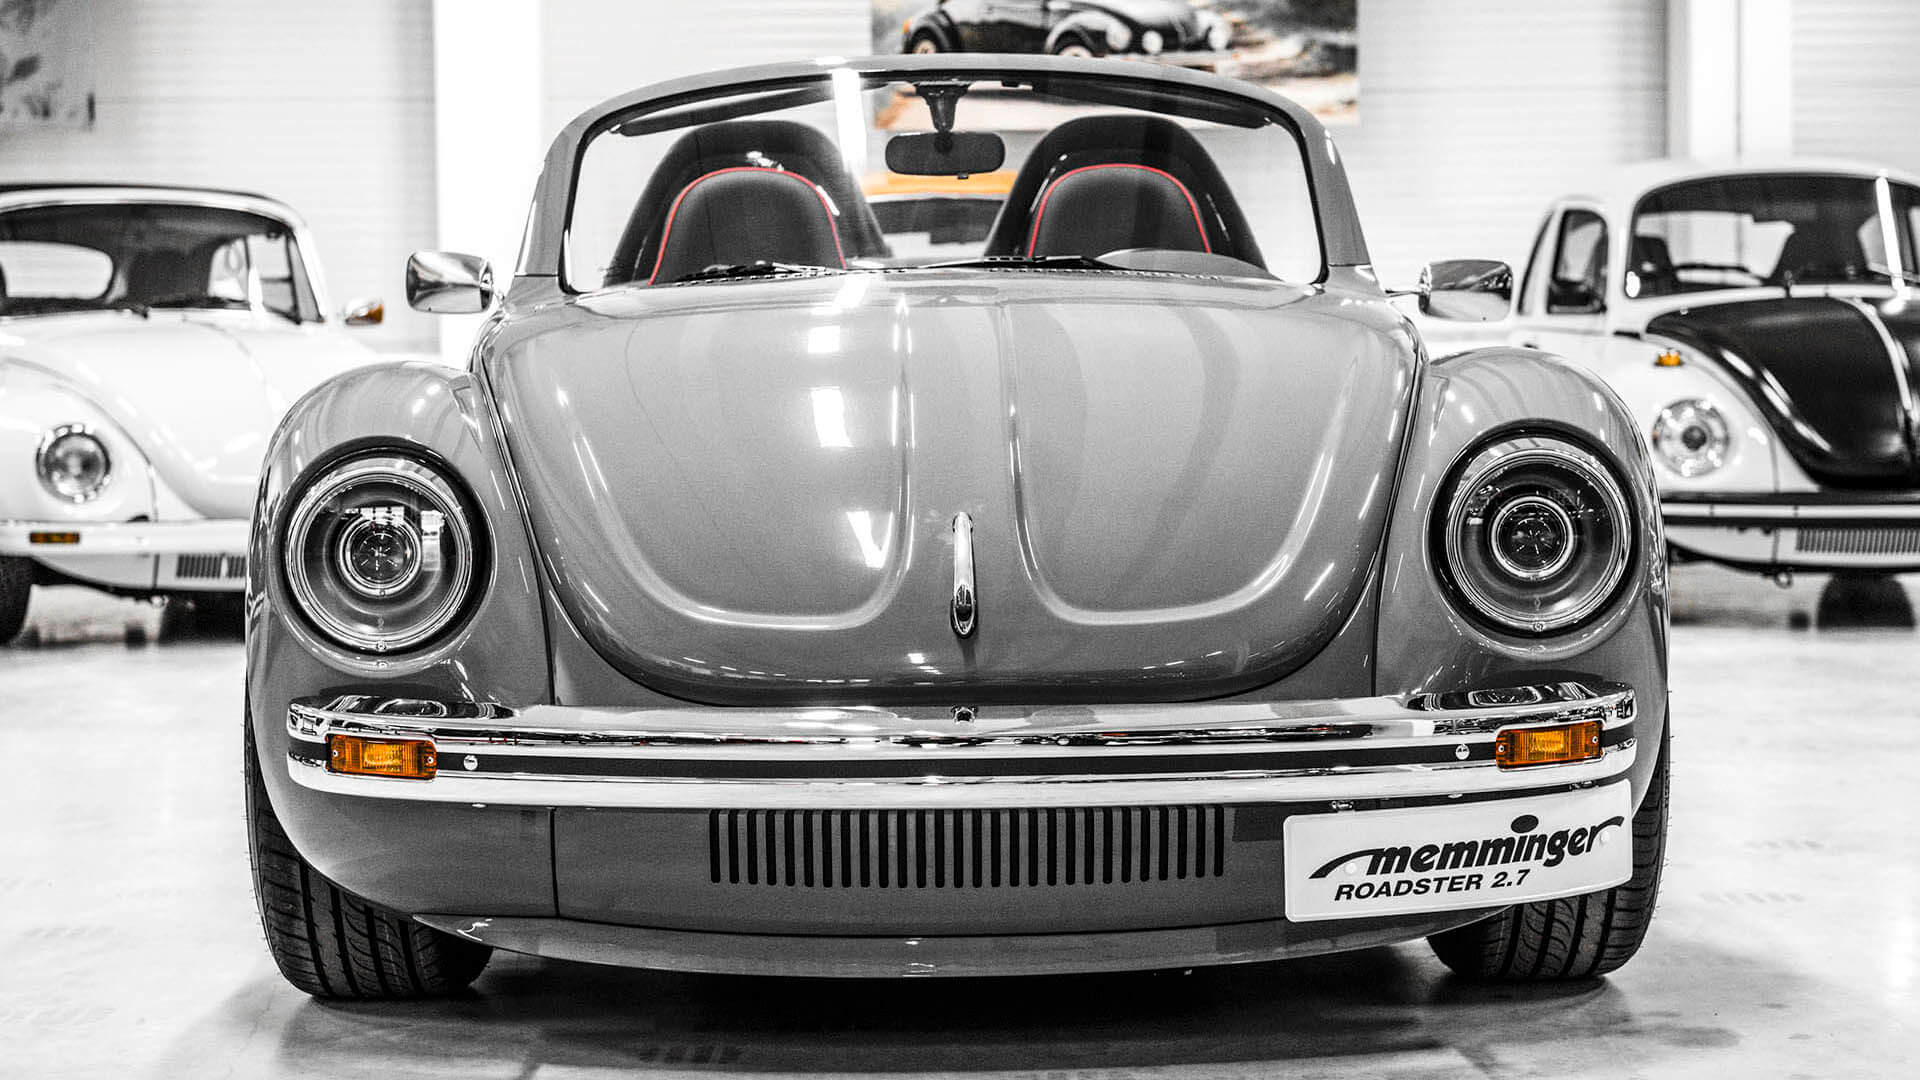 Memminger Roadster – A Beautiful Look Into The Future Via The Past